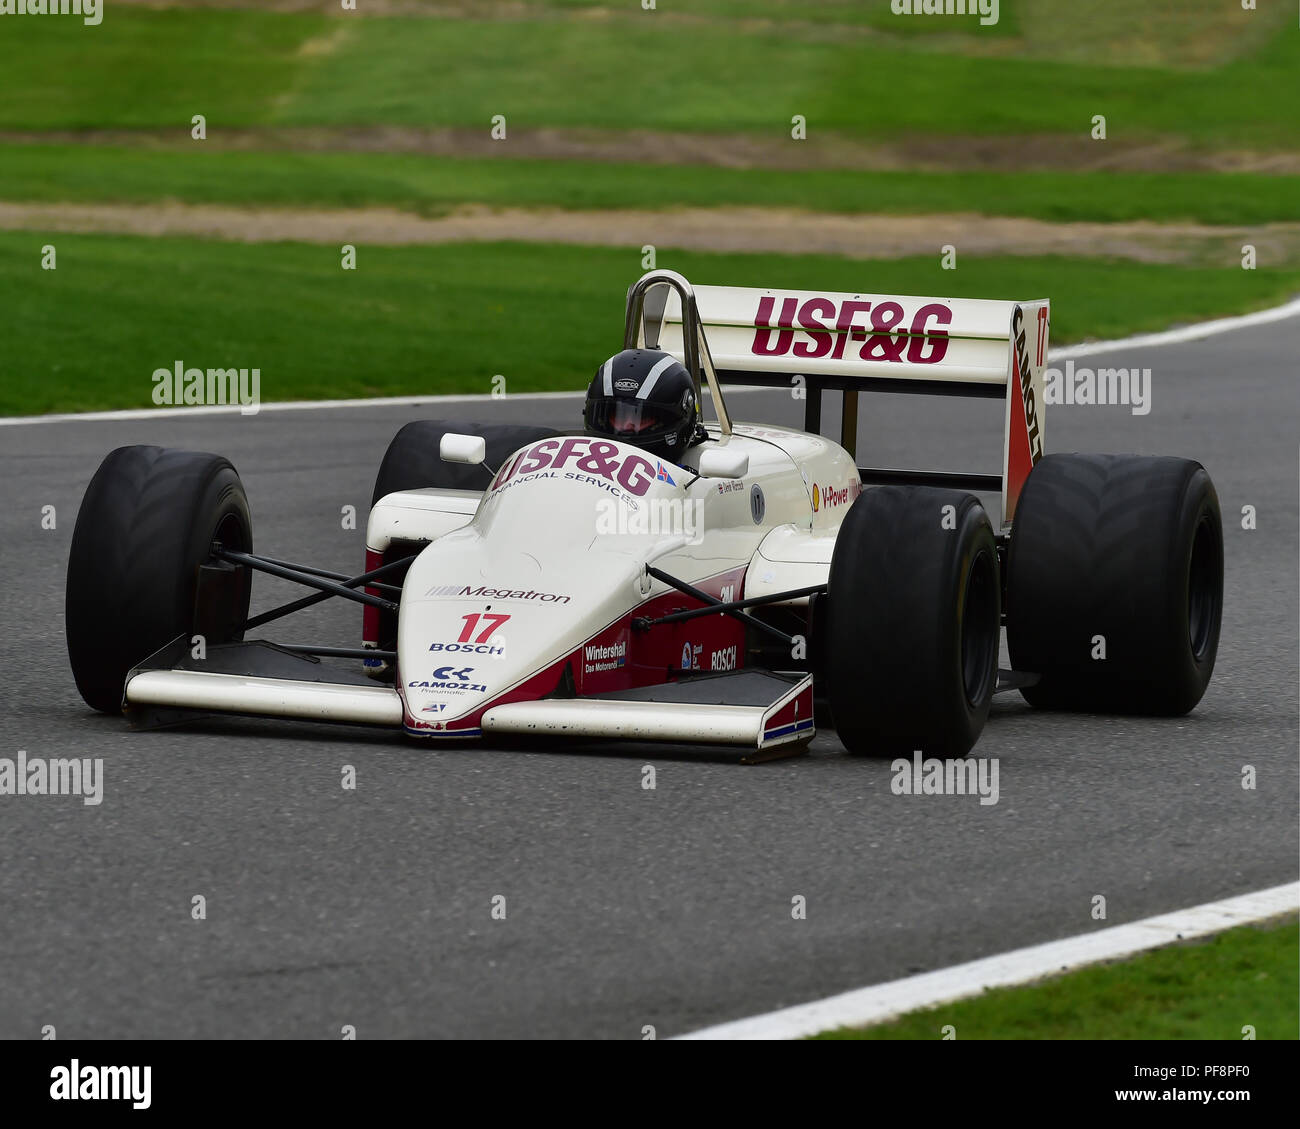 Rob Spencer, Arrows A10B, F1, Historic Racing Car Demonstration, Festival Italia, Brands Hatch, Kent, August 19th, 2018, circuit racing, competition,  - Stock Image